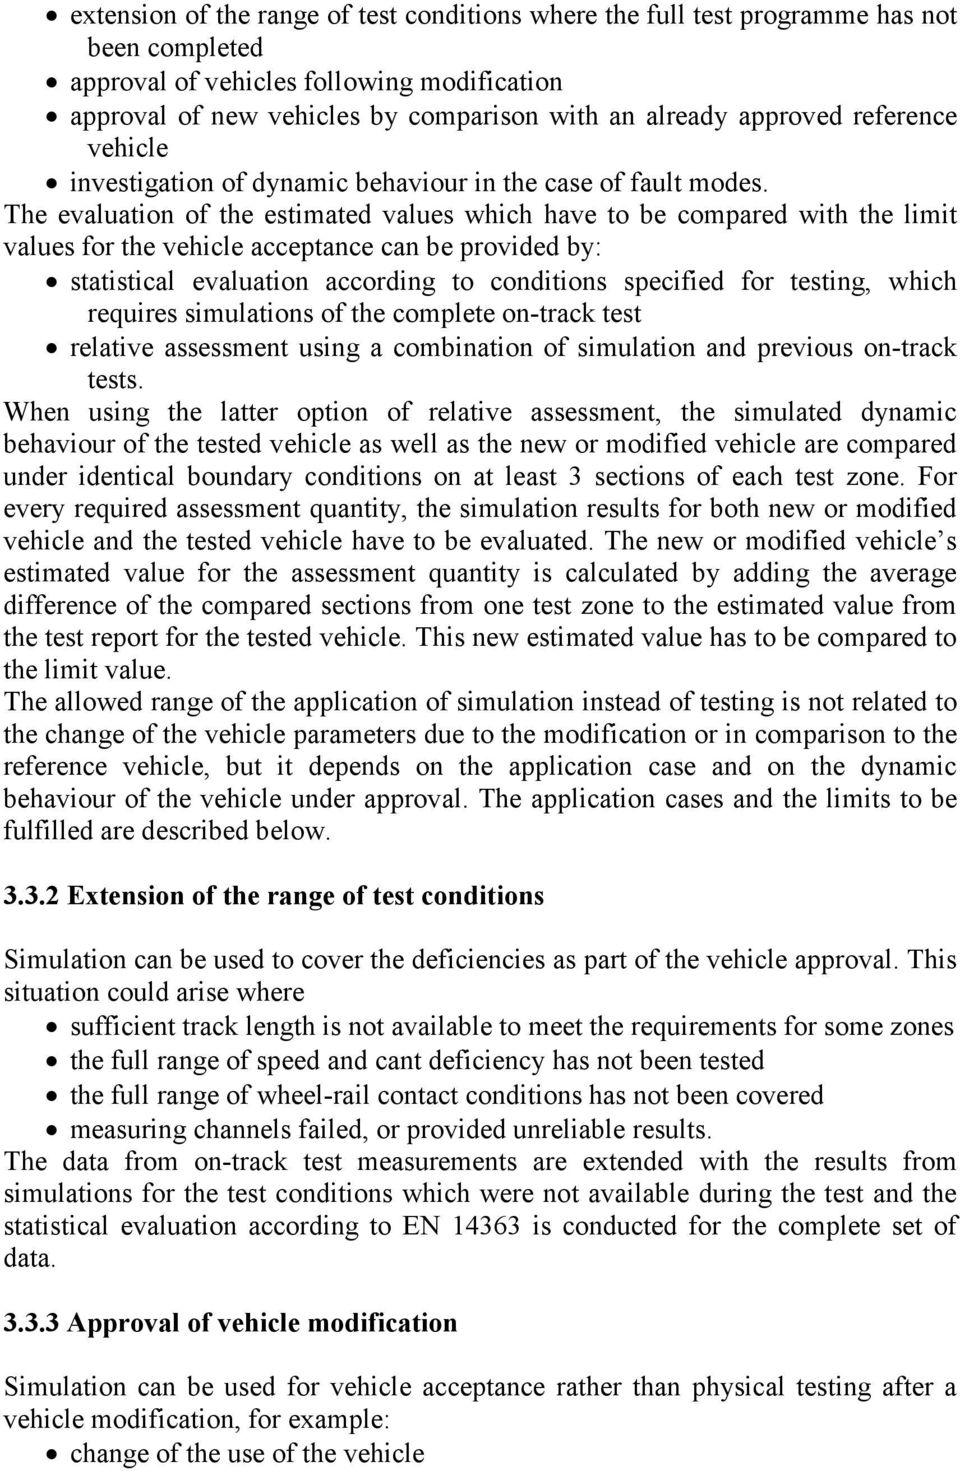 The evaluation of the estimated values which have to be compared with the limit values for the vehicle acceptance can be provided by: statistical evaluation according to conditions specified for